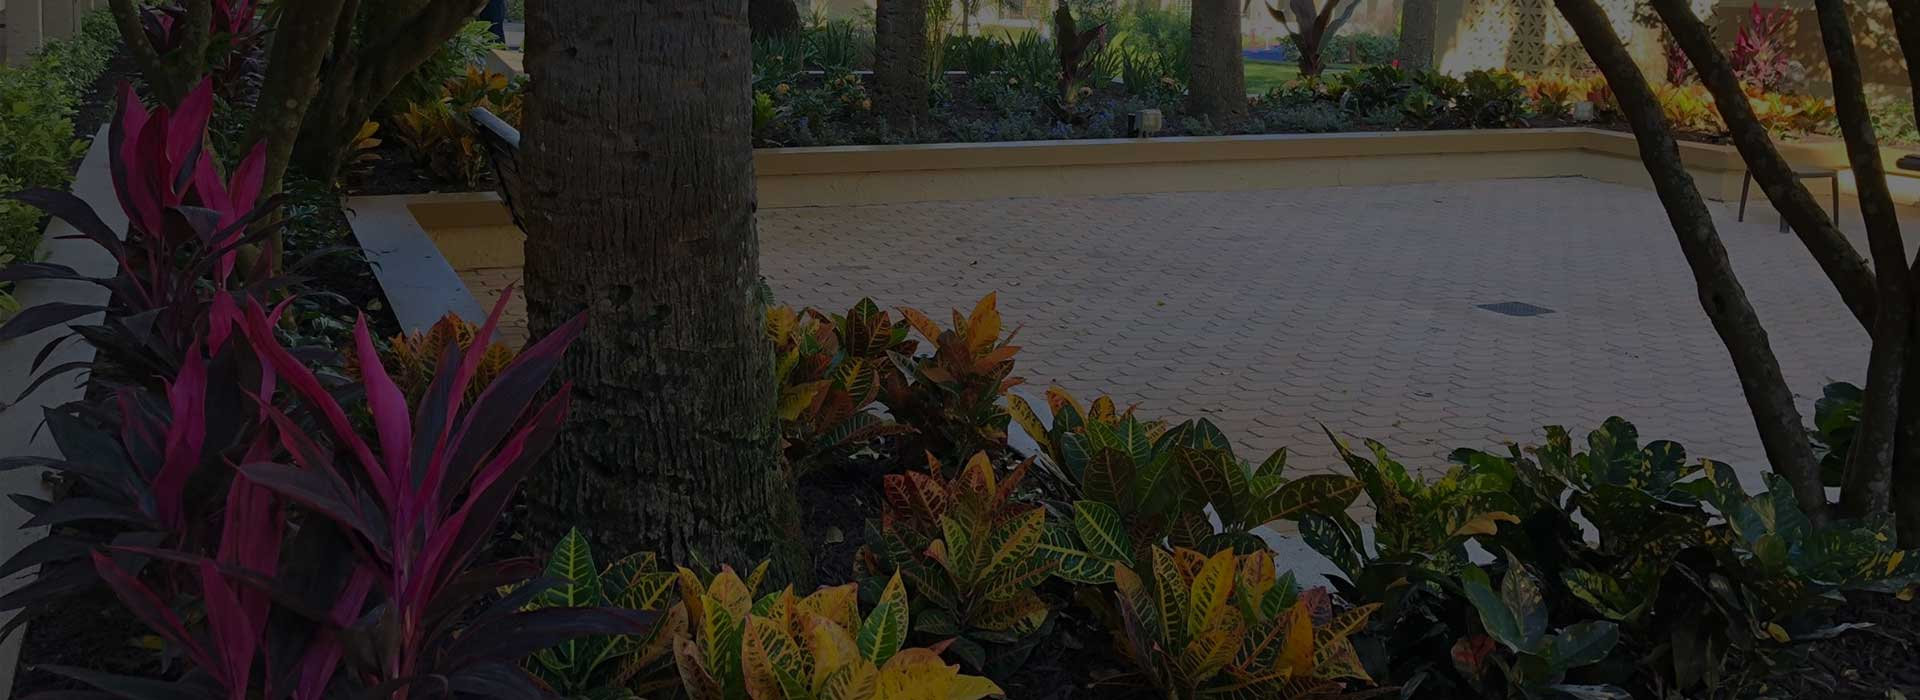 Commercial landscaping installation at a hotel in Orlando, FL.